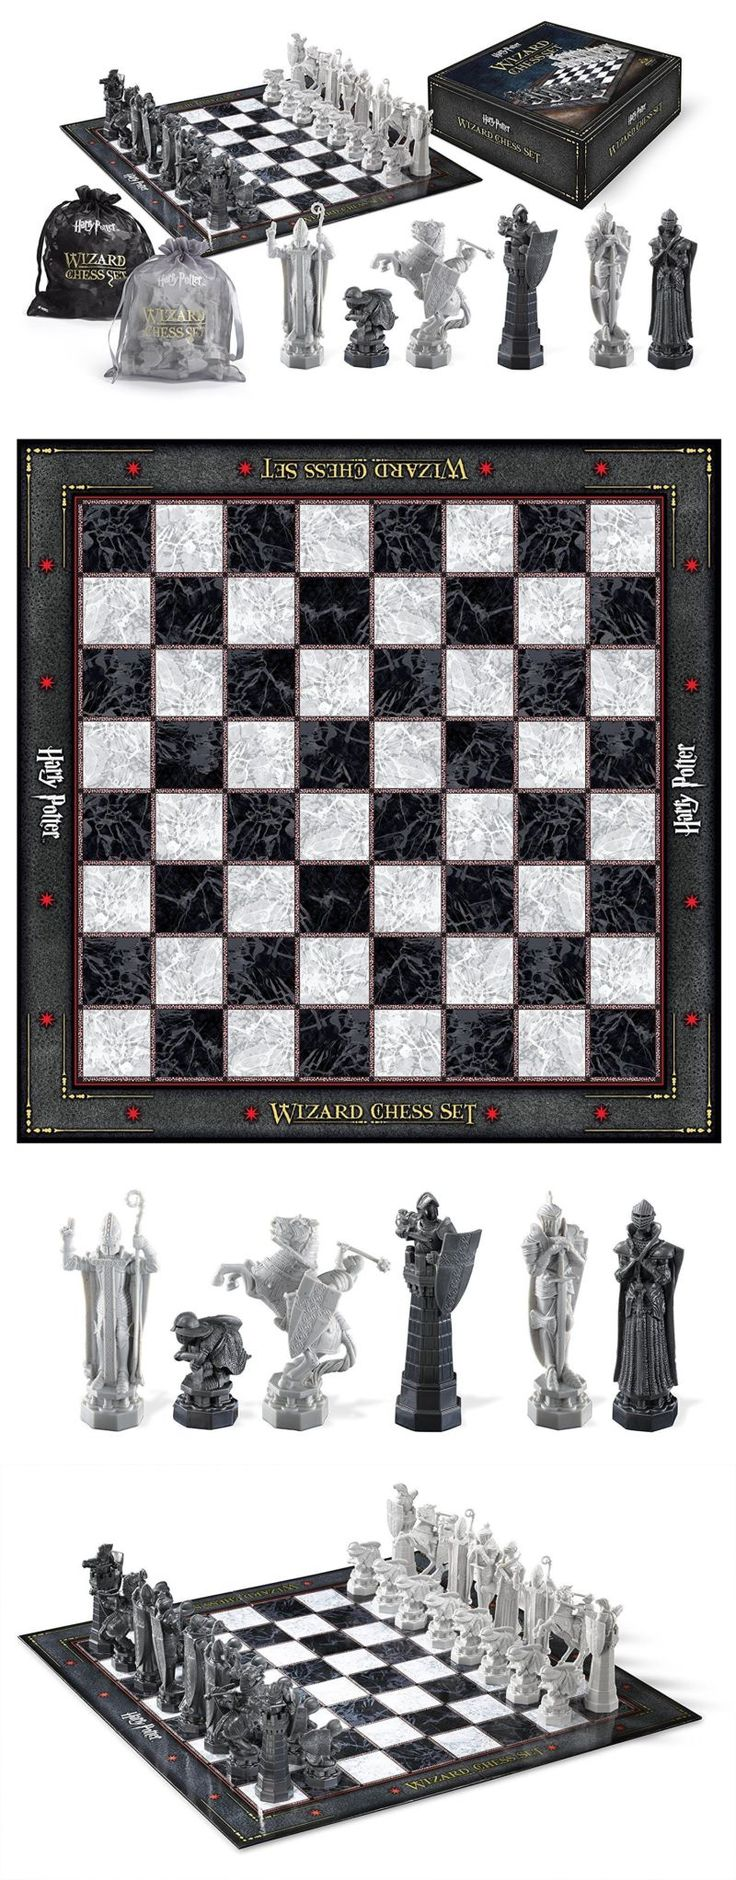 Contemporary Chess 40856: Harry Potter Wizard Chess Set (Nn7580) -> BUY IT NOW ONLY: $55.73 on eBay!